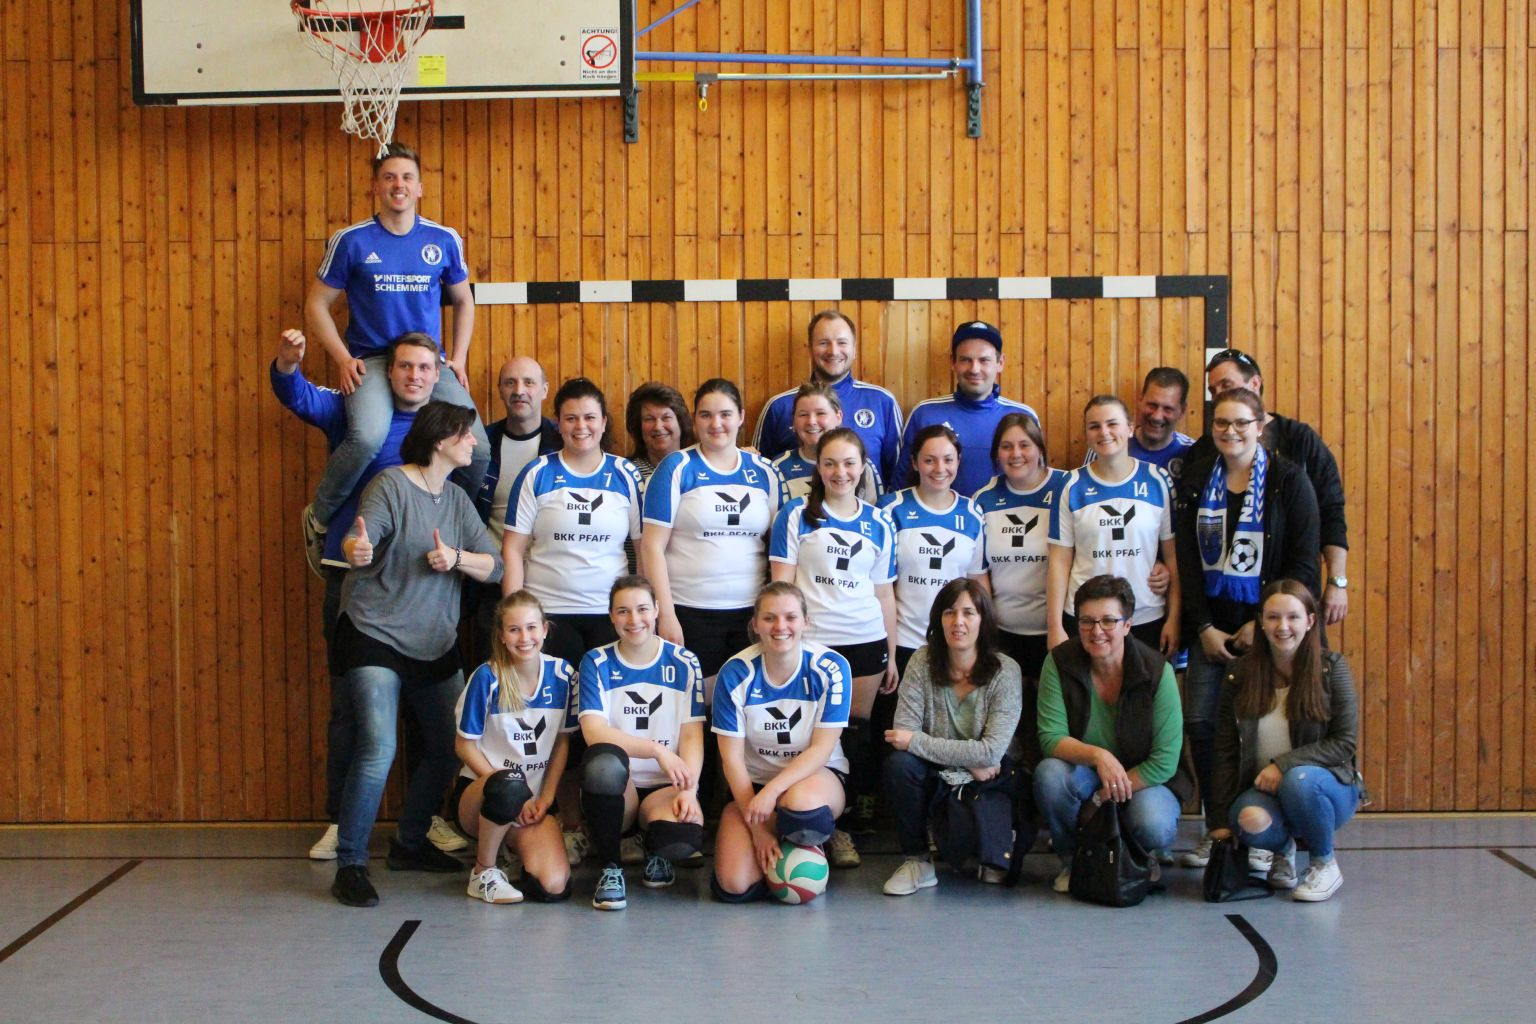 170325_Volleyball_IMG_4245